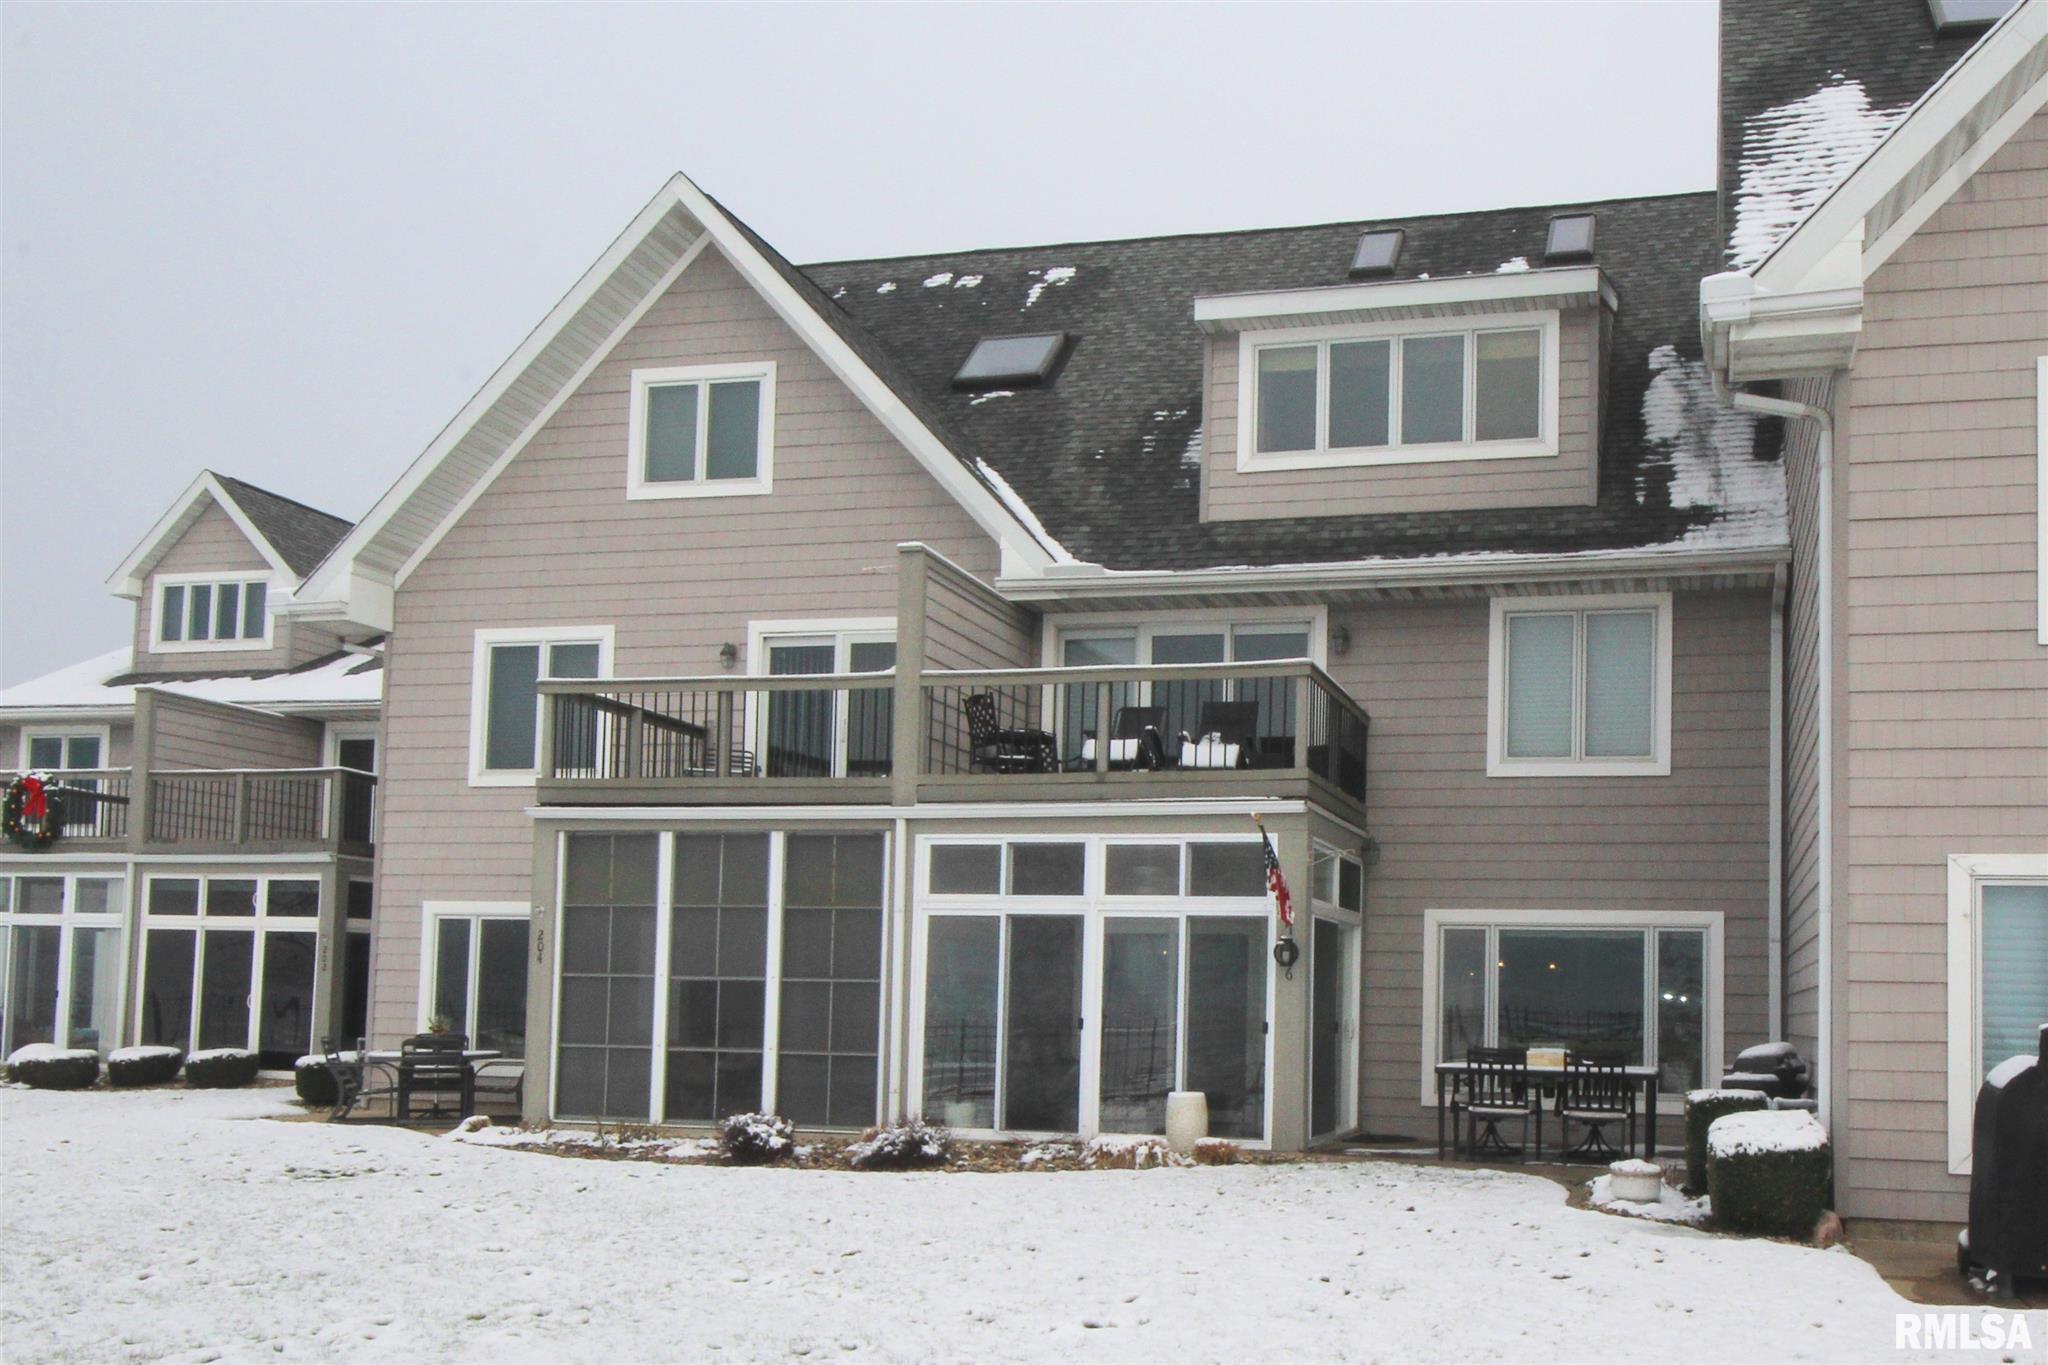 206 HARBOR POINTE Property Photo - East Peoria, IL real estate listing